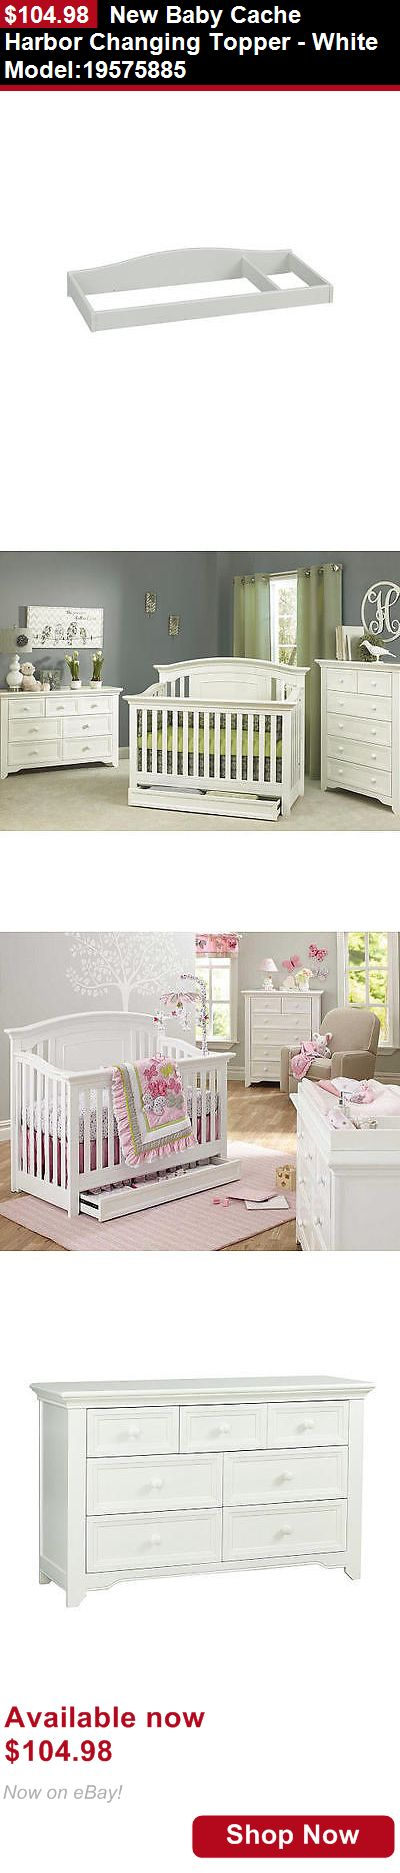 Nursery Furniture Sets: New Baby Cache Harbor Changing Topper - White Model:19575885 BUY IT NOW ONLY: $104.98